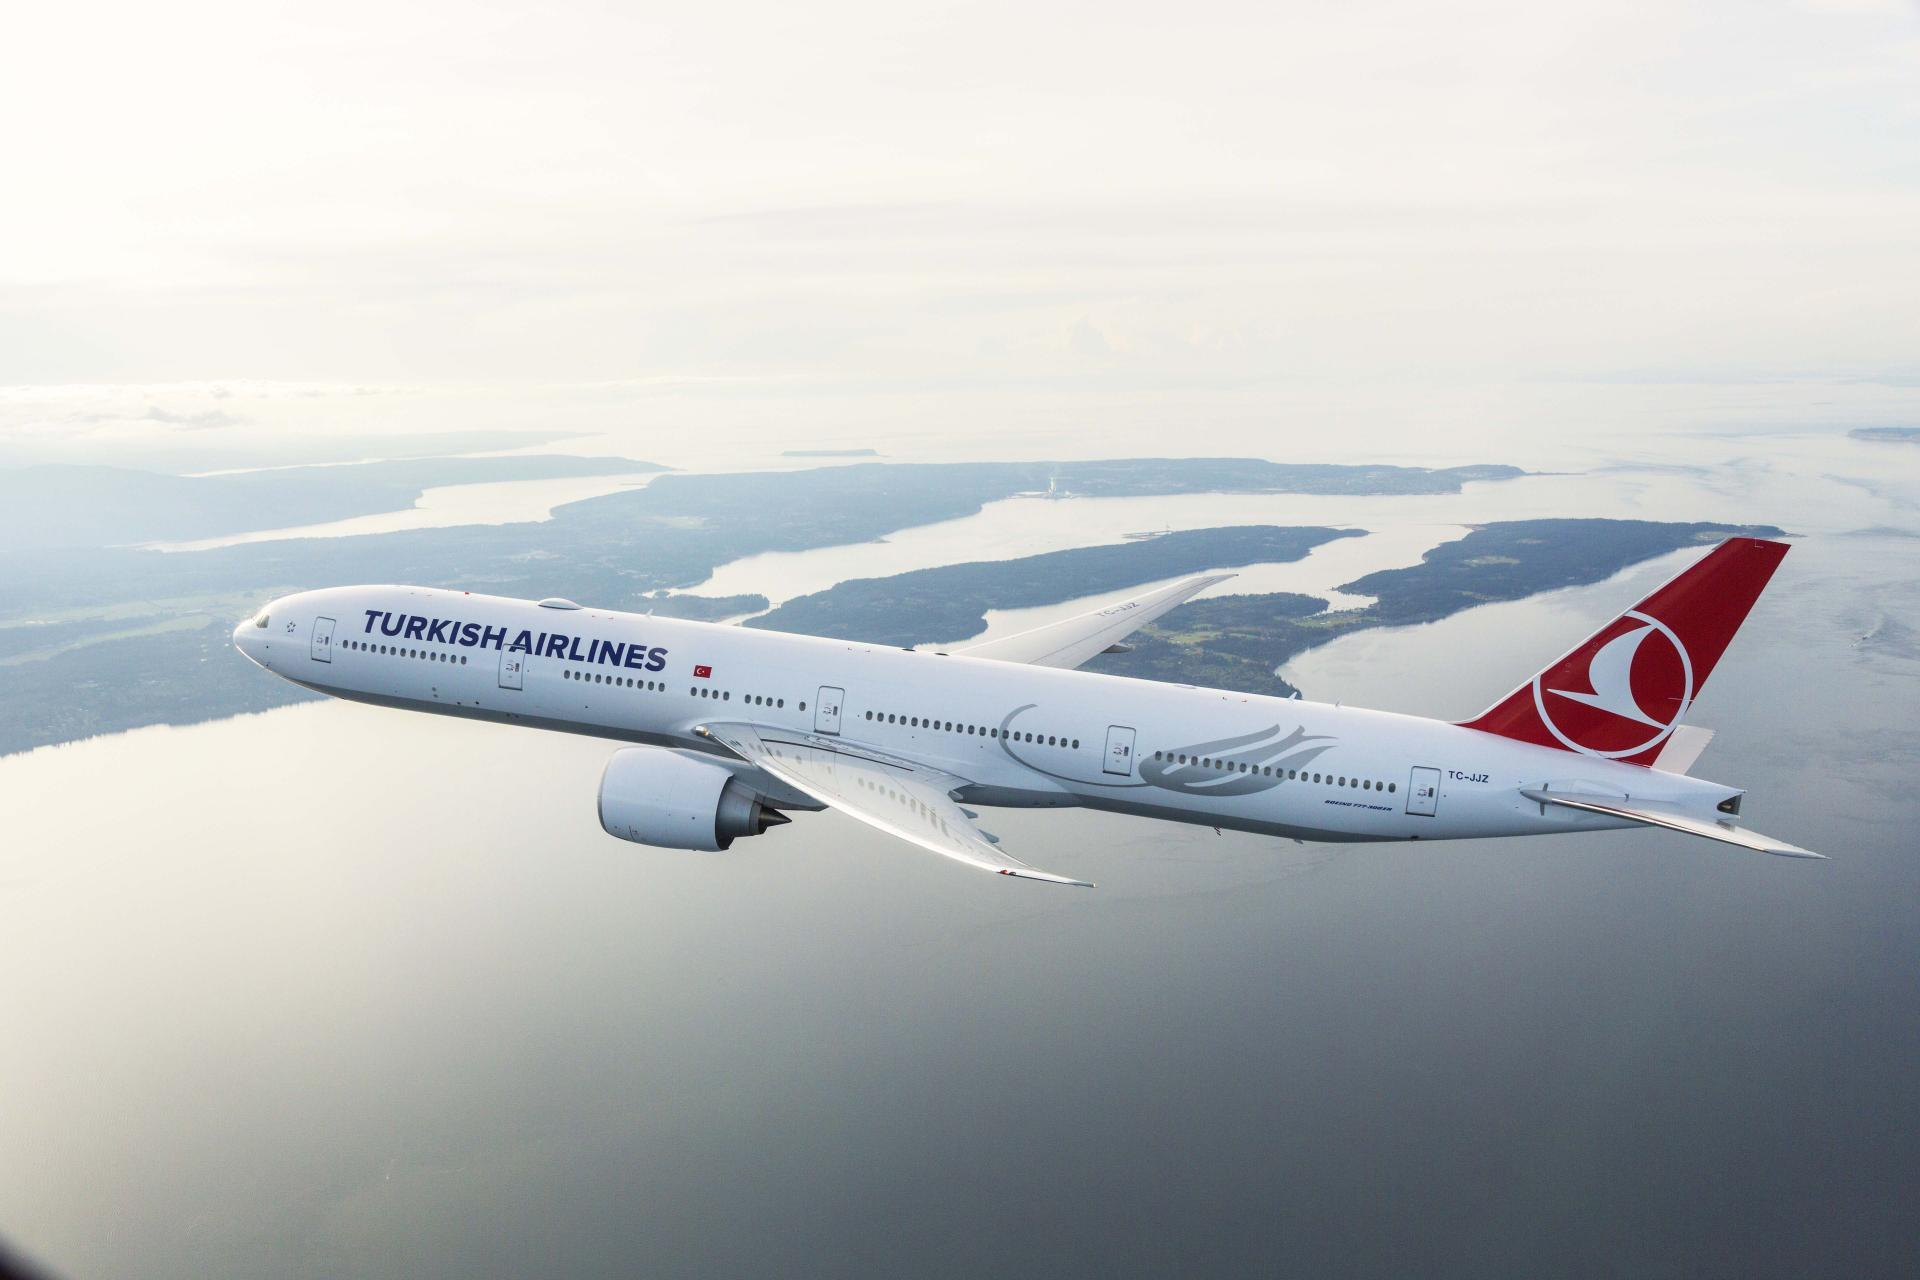 Turkish Airlines prioritizes cargo flights in aviation history's most challenging year